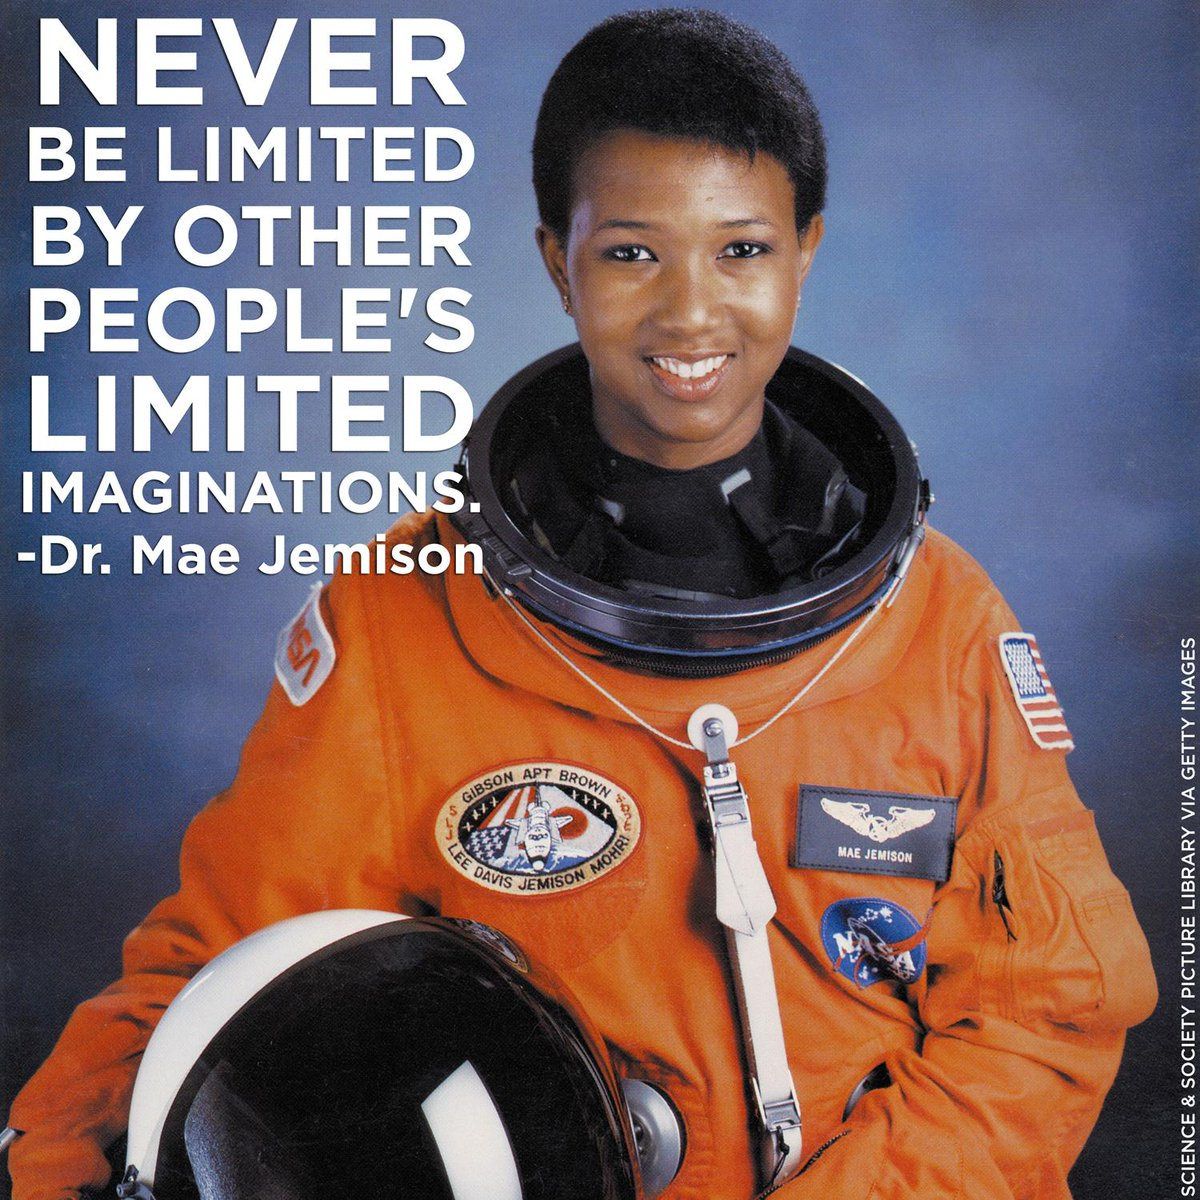 """Never be limited by other people's limited imaginations.""  —Dr. Mae Jemison, first African-American female astronaut"